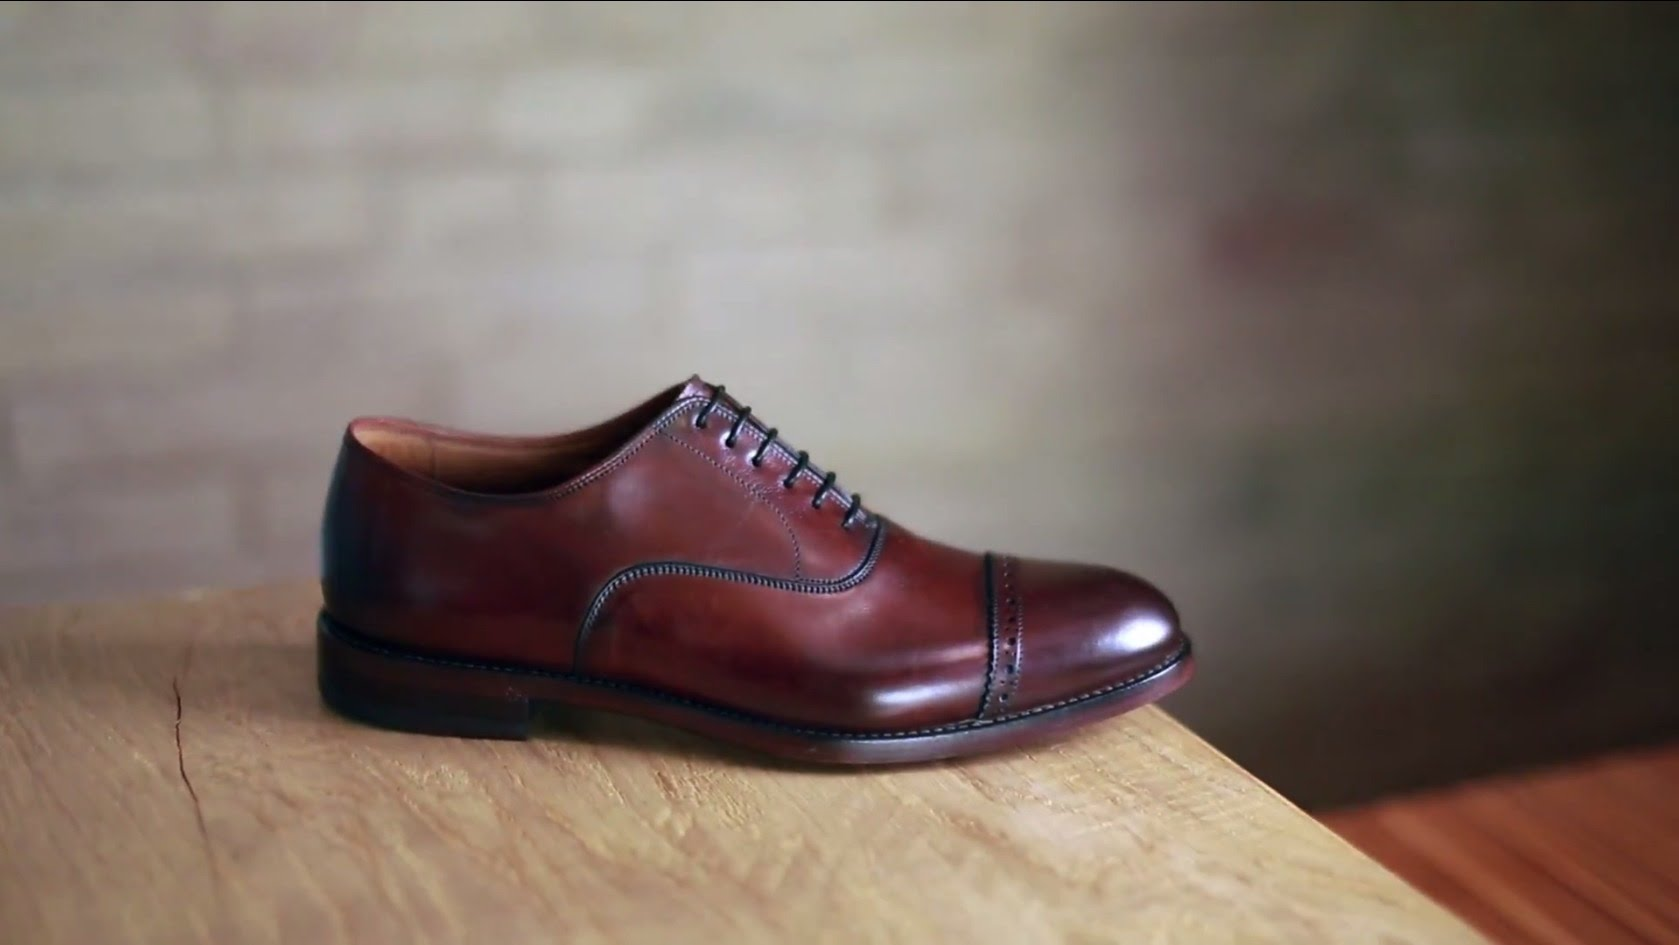 Fundamental Shoes for the Fashionable Male